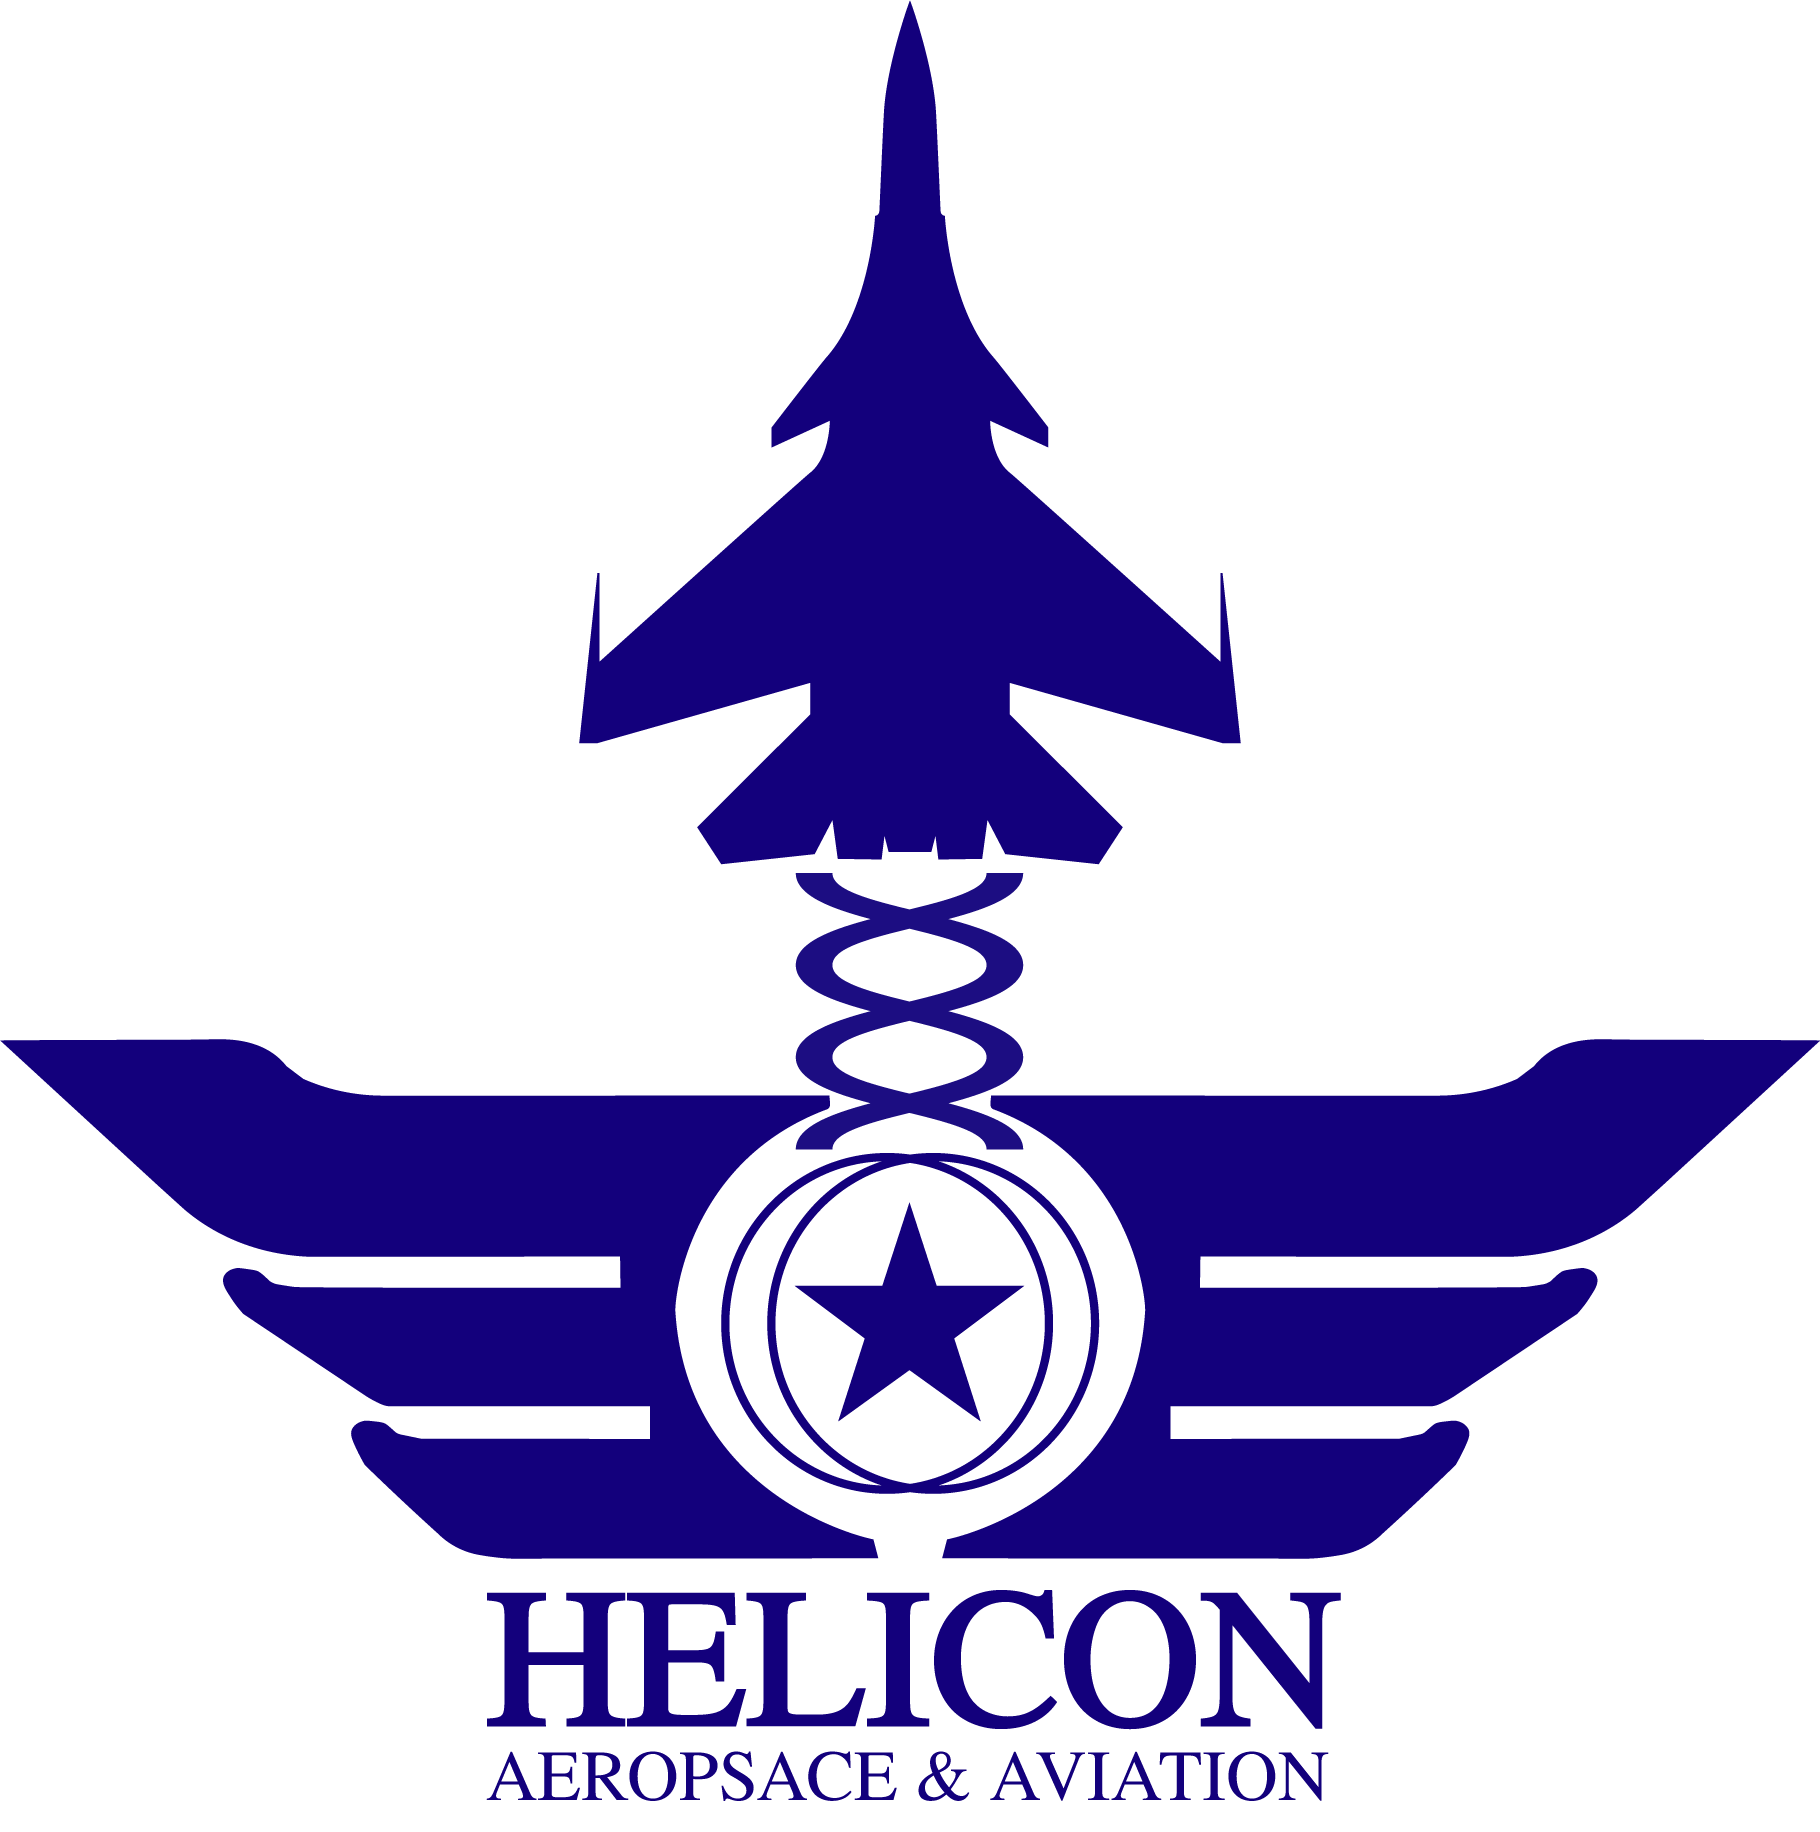 Helicon Aerospace & Aviation Pvt Ltd was started in 2017 at Bangalore, India by aerospace experts with the objective of connecting Indian Aerospace Industry to the global aerospace.